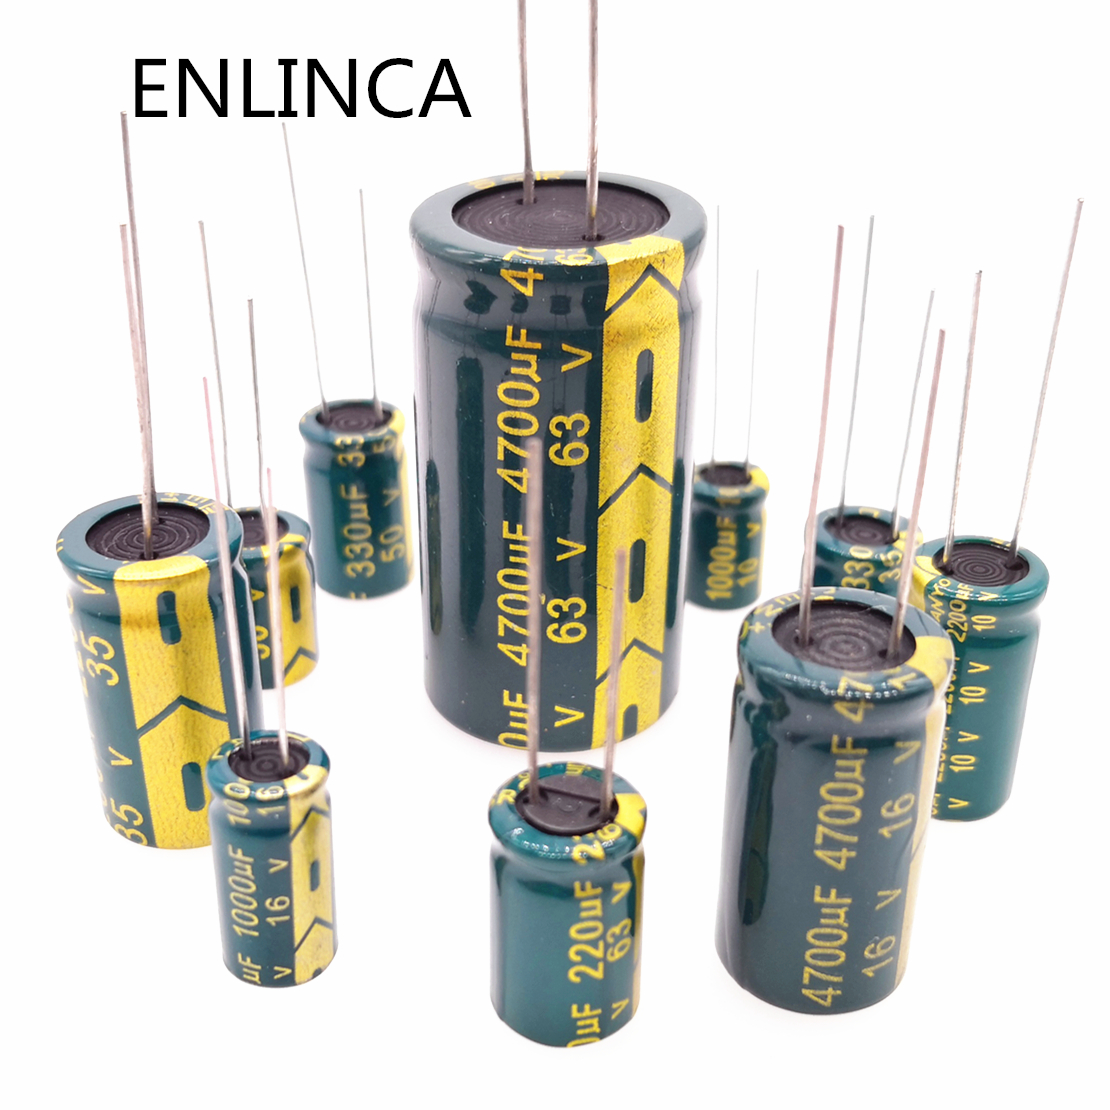 5-20pcs 6.3v 63v 100v 250v 400v 450V Low ESR High Frequency Aluminum Capacitor 2.2uf 4.7uf 6.8uf 10uf 22uf 33uf 68uf 82uf 120uf